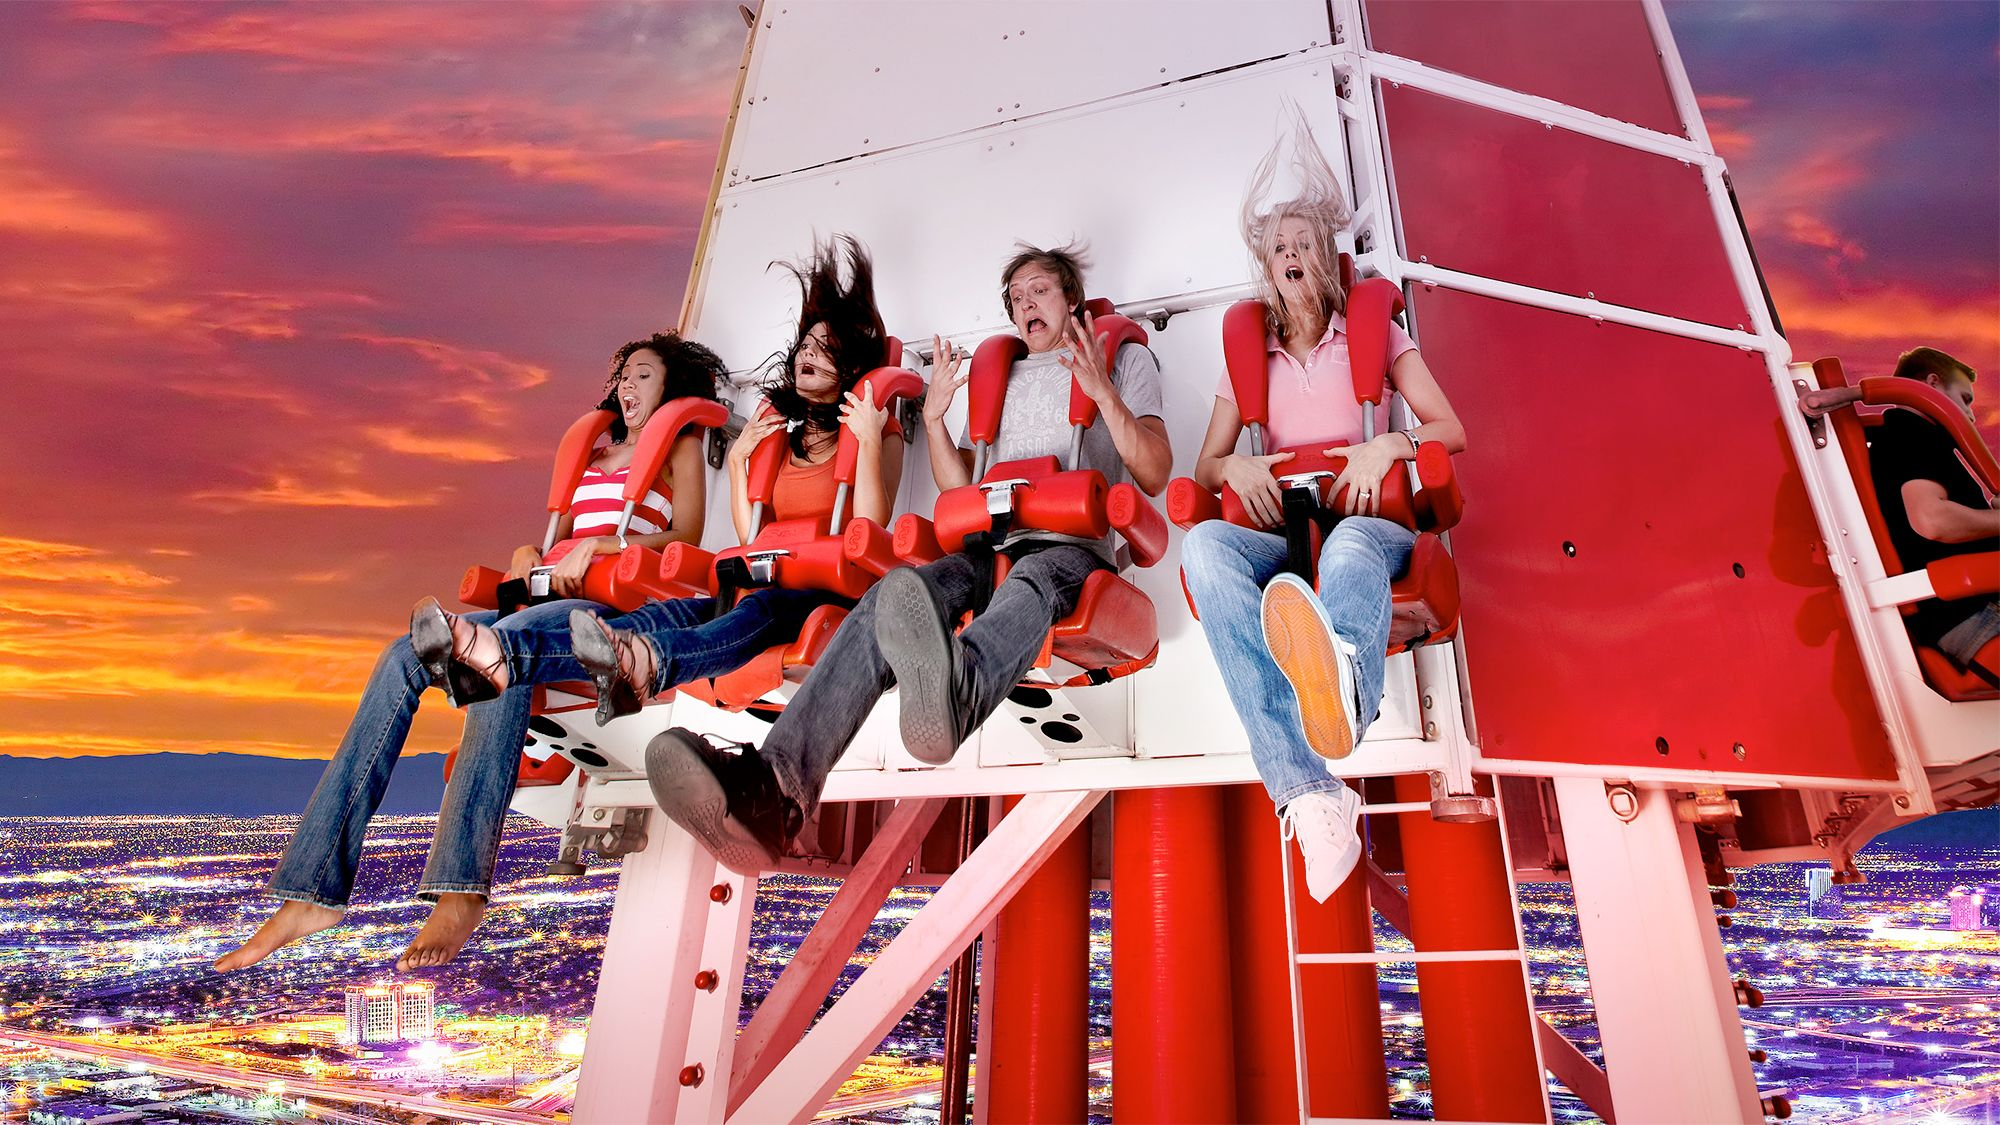 Group at the Stratosphere Tower in Las Vegas, NV